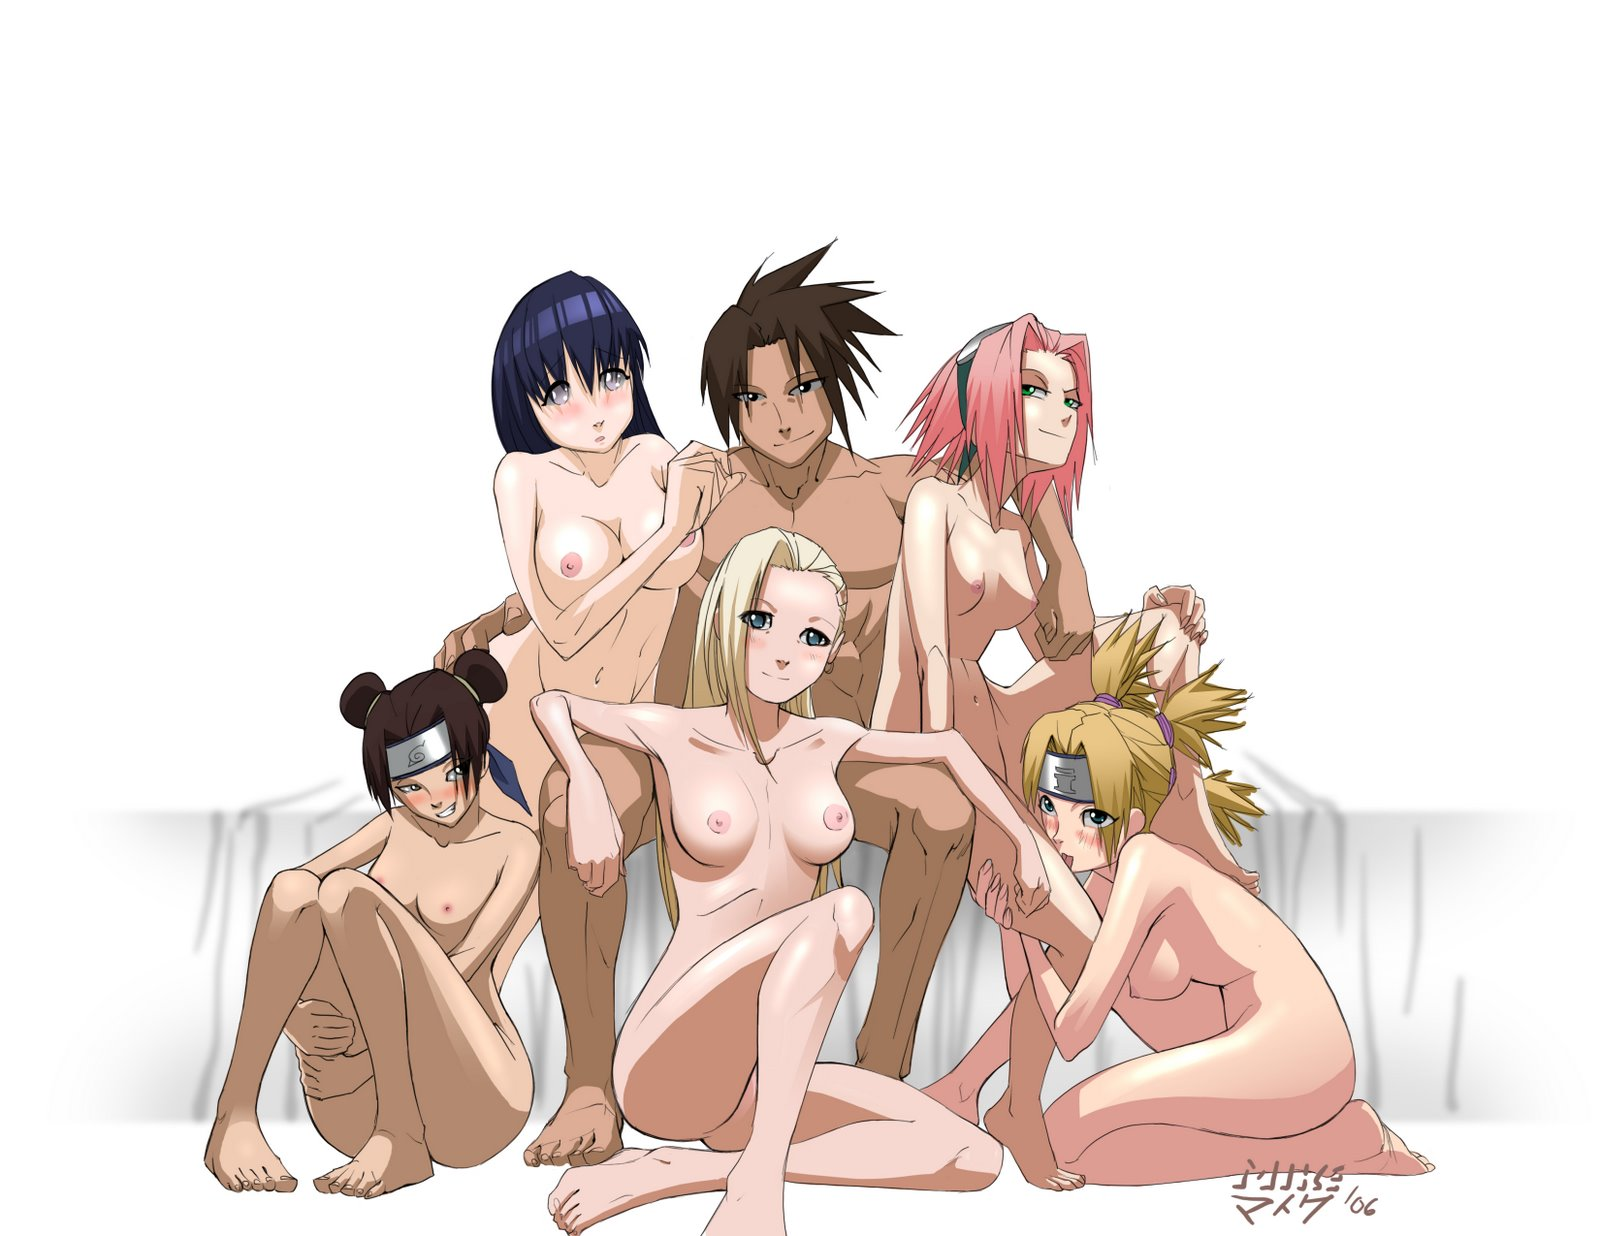 Naruto sd porn pics nude pictures